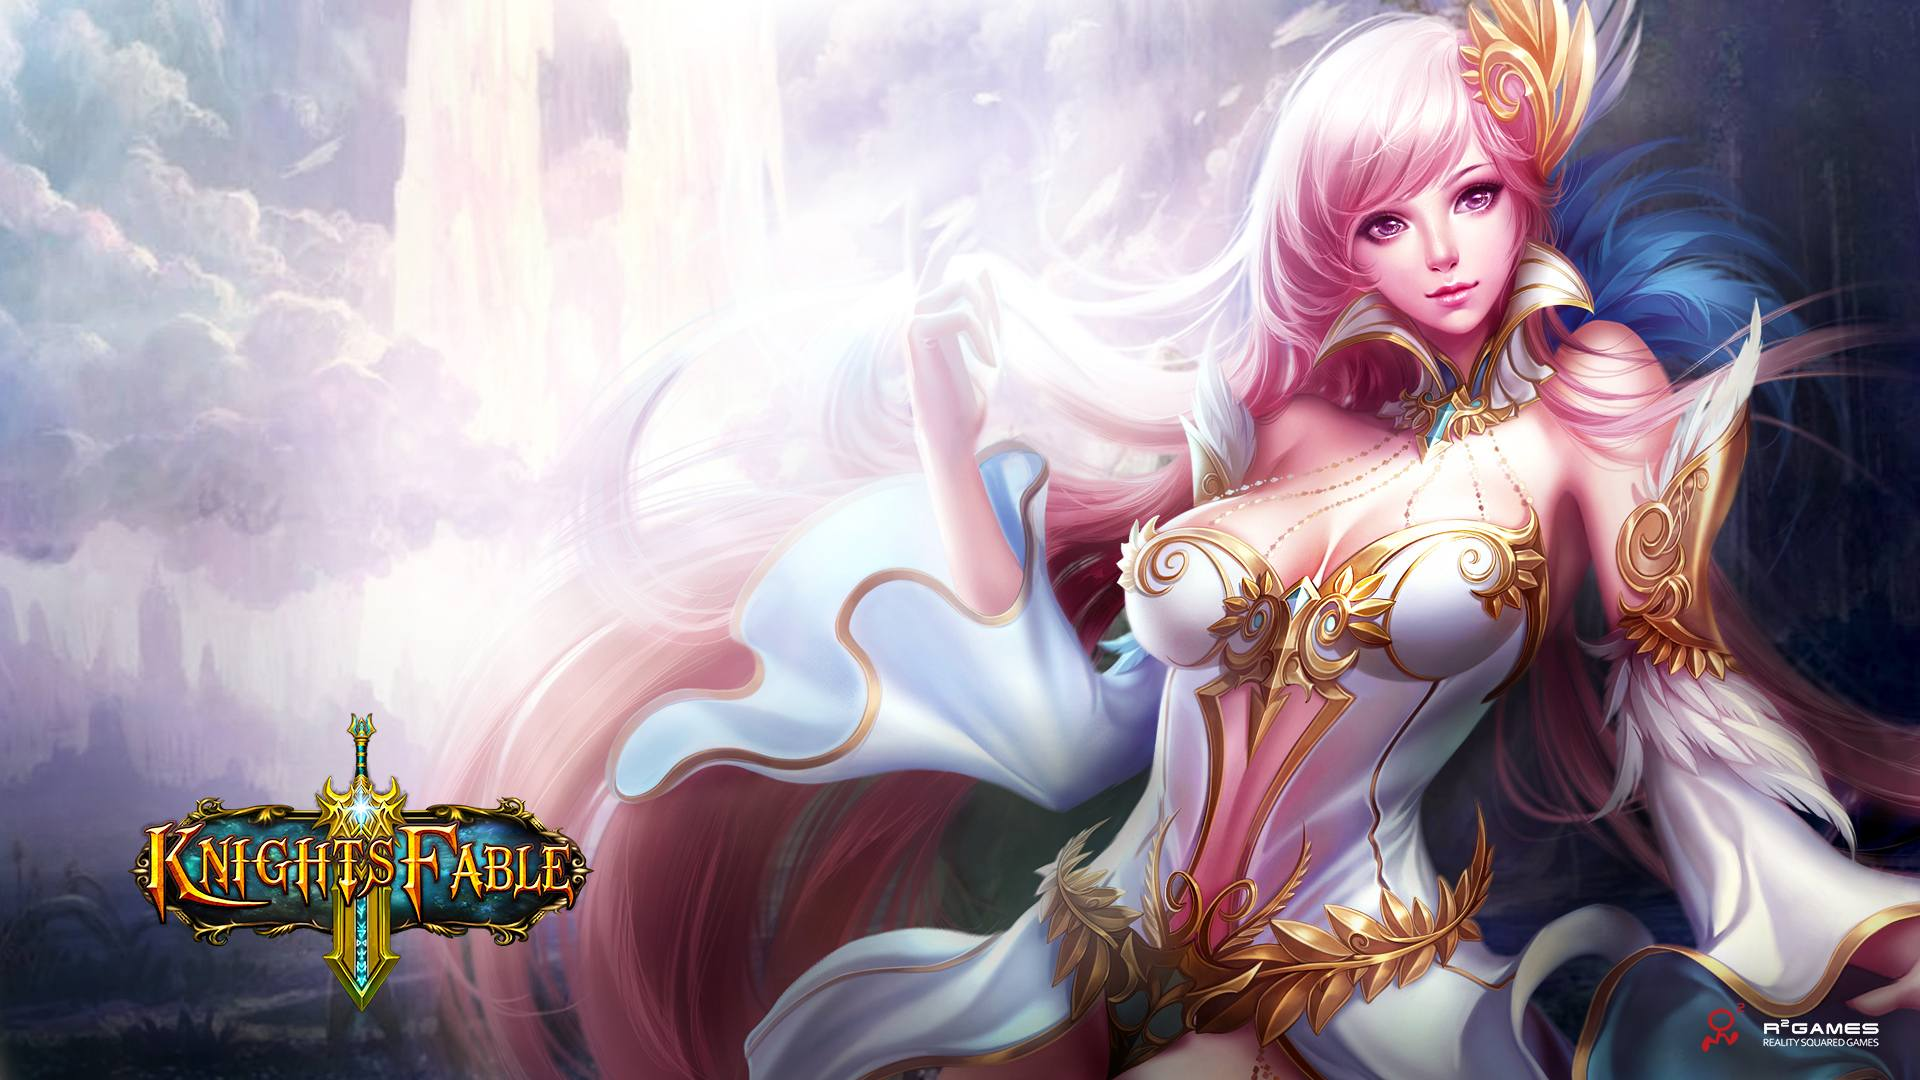 Beautiful Hd Girl Wallpapers For Mobile Knight S Fable Wallpapers